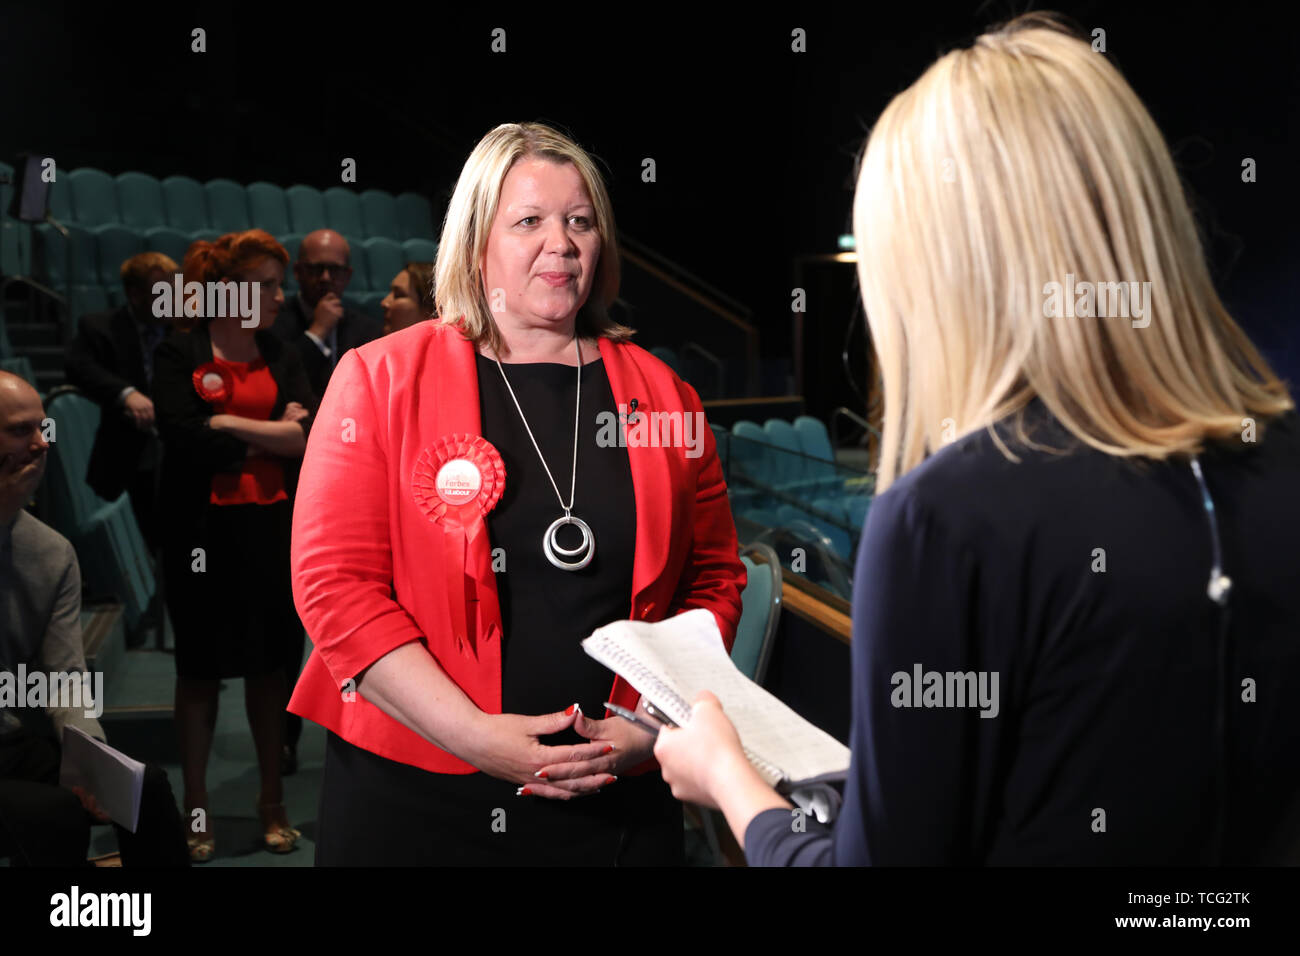 Peterborough, UK. 07th June, 2019. Lisa Forbes (Labour Party Candidate) has become the  new Member of Parliament for Peterborough, beating Mike Greene (Brexit Party candidate) into second place and Paul Bristow (Conservative Party candidate) was third. The by-election was held in Peterborough today after disgraced MP Fiona Onasanya was removed from her post as Peterborough MP when over 19,000 signed a recall petition, following her court appearance over a speeding ticket, and her spell in jail. Peterborough by-election, Peterborough, Cambridgeshire, UK on June 7, 2019. Credit: Paul Marriott/Al - Stock Image